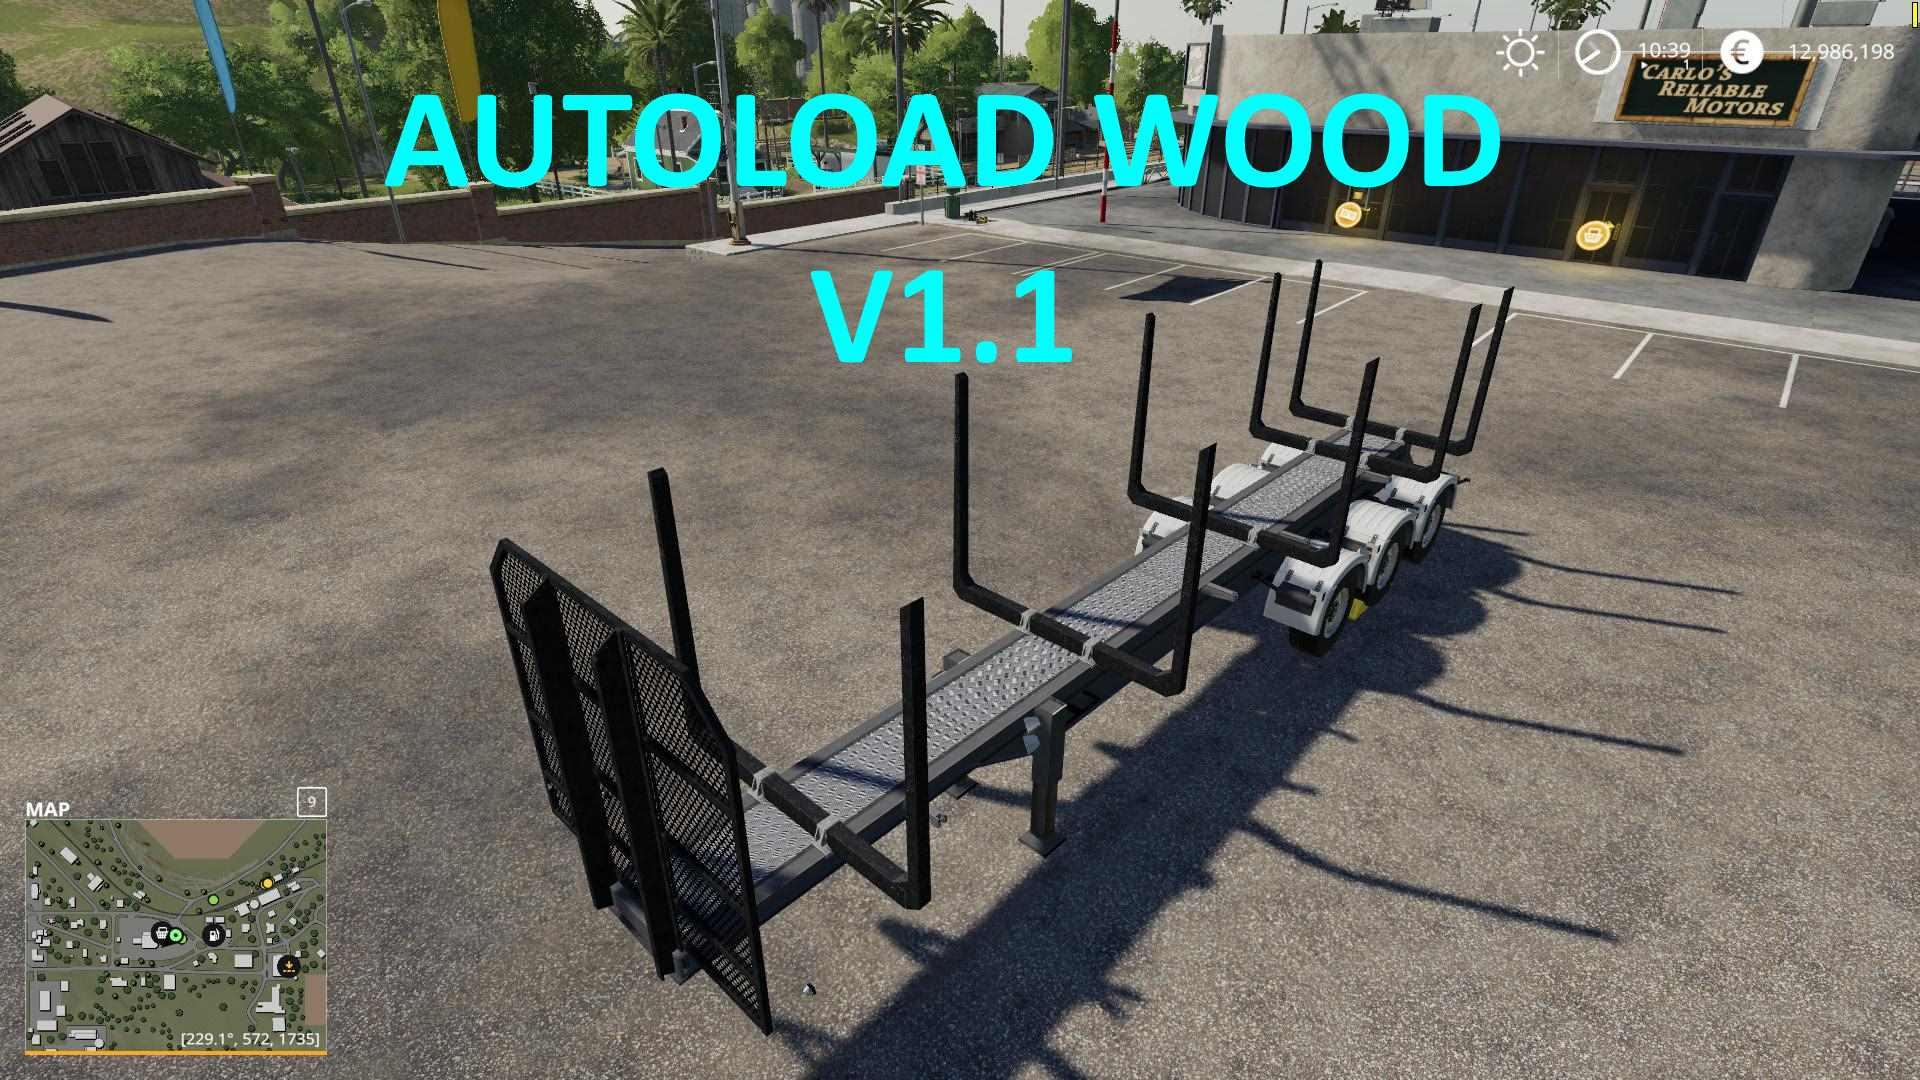 Timber Runner Wide With Autoload Wood v1 1 FS19 - Farming Simulator